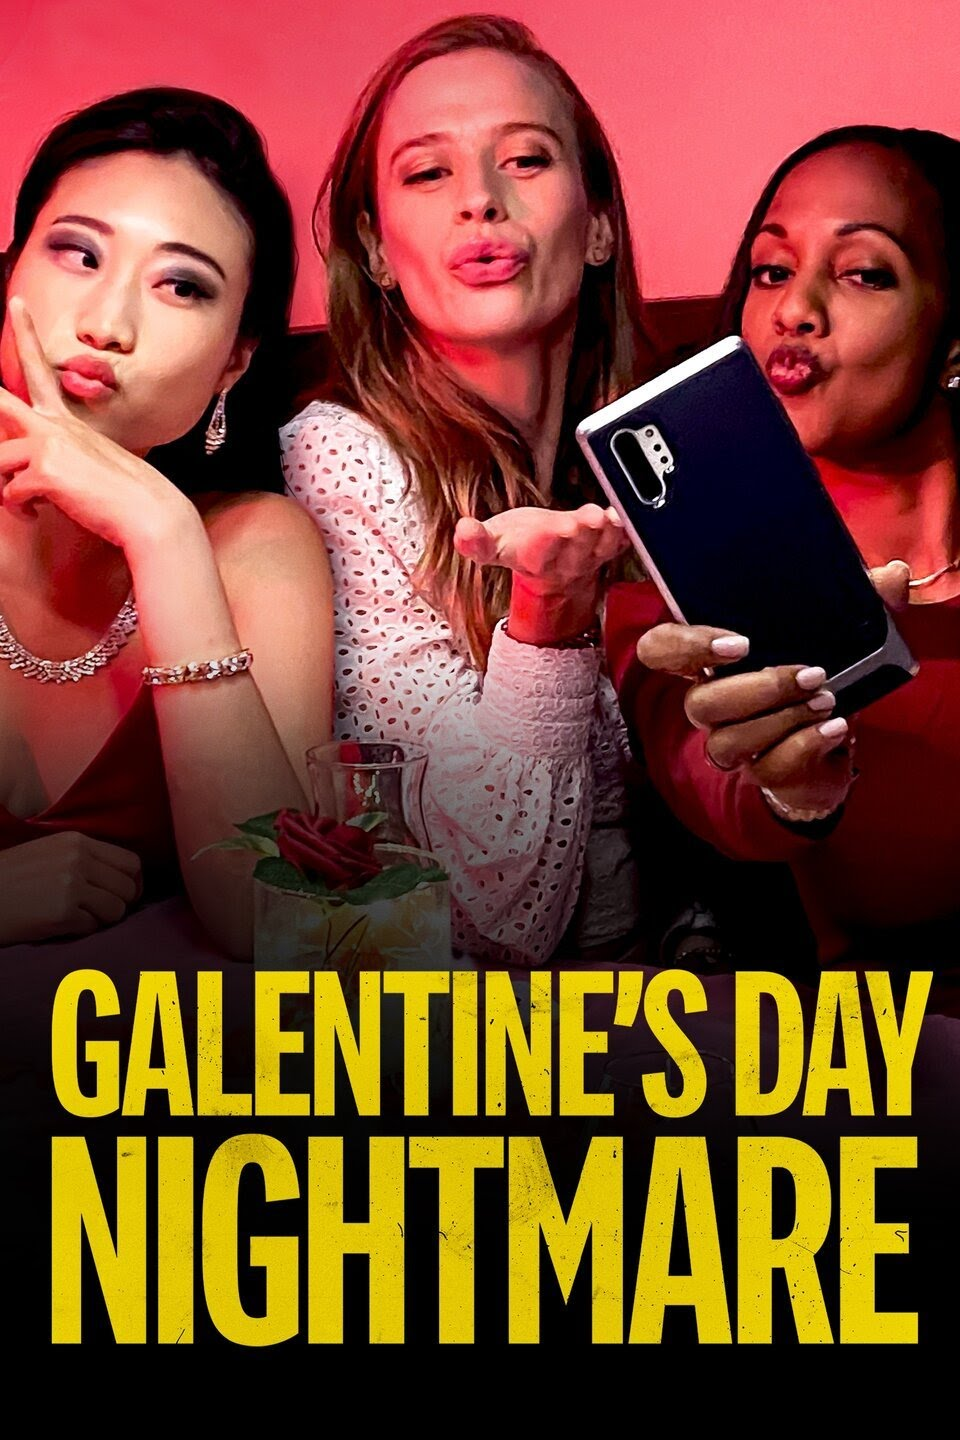 Galentine's Day Nightmare 2021 Canada Roxanne Boisvert Camille Stopps Anthony Grant Tina Jung  Thriller